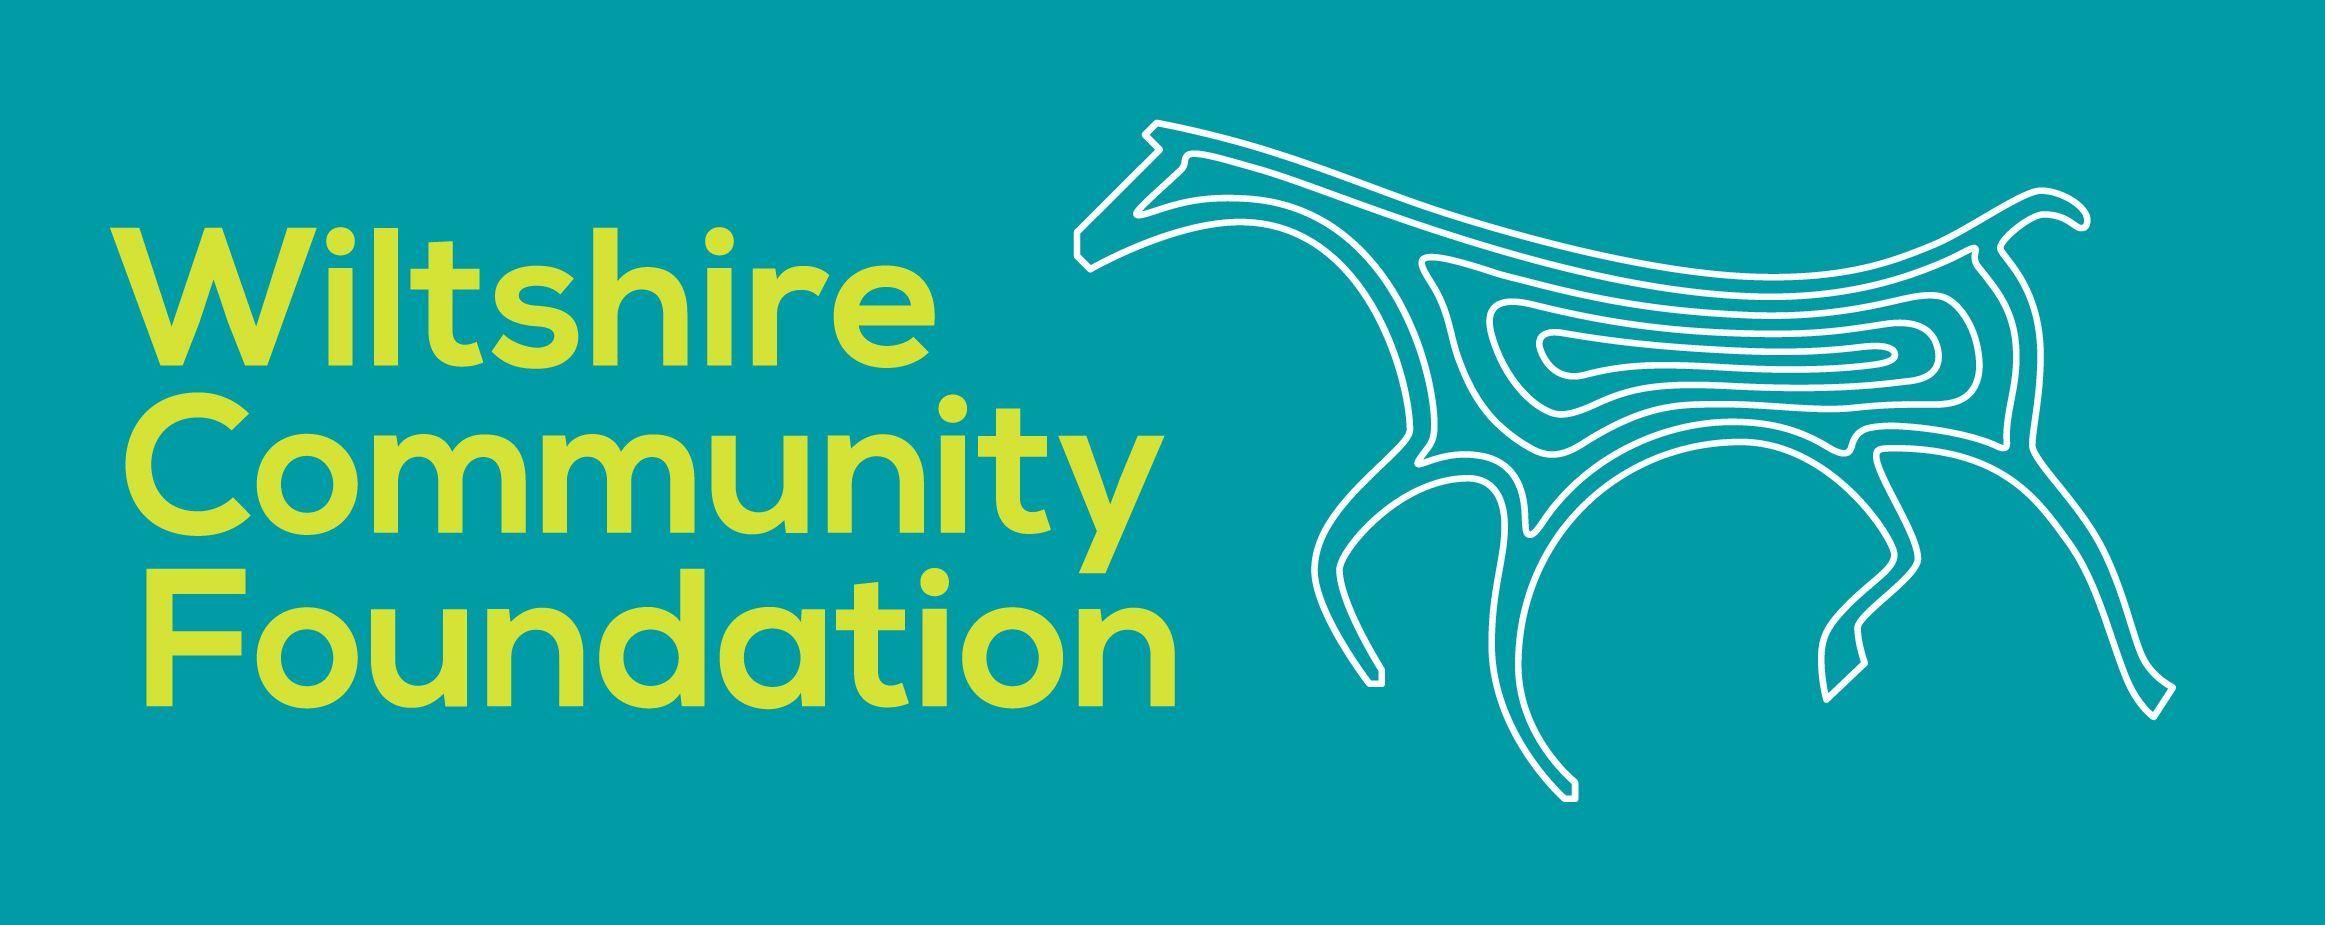 Wiltshire Community Foundation Logo